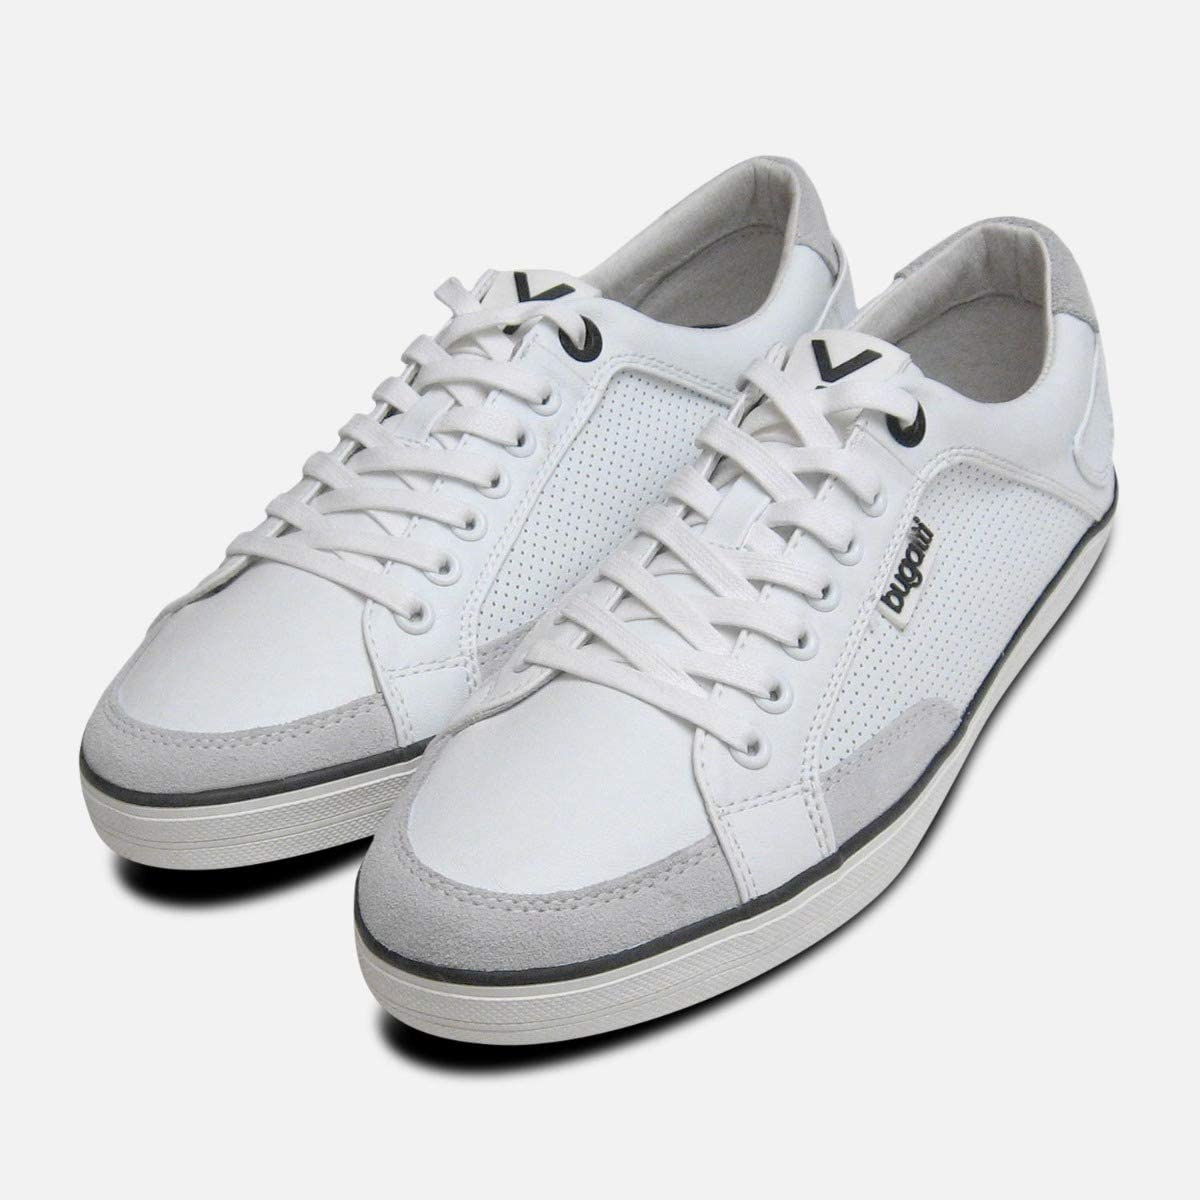 Mens White Leather Designer Trainers by